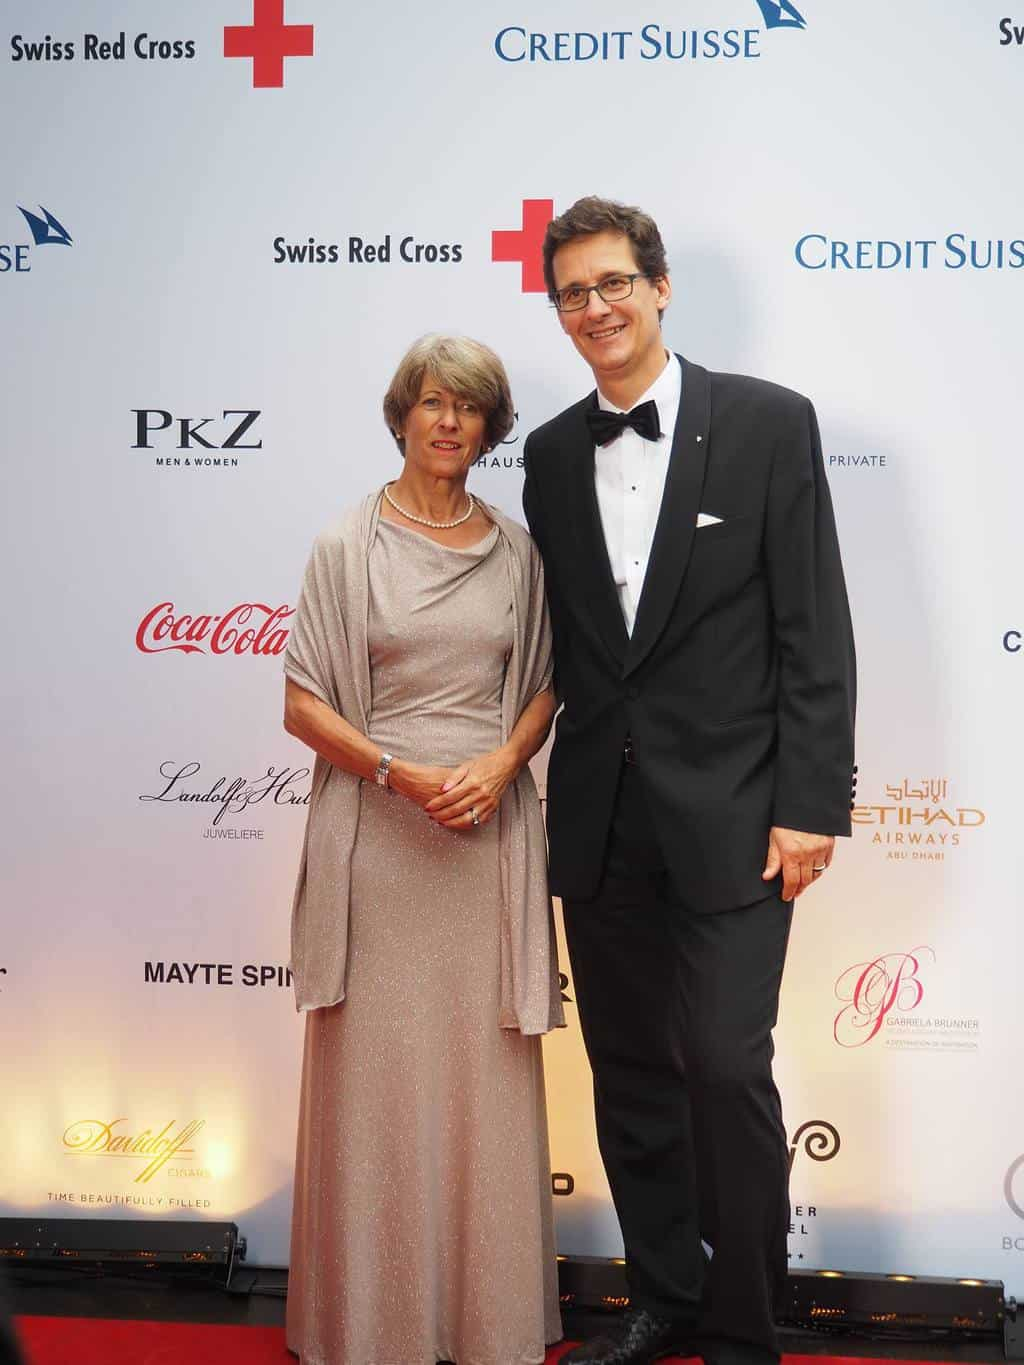 Swiss Red Cross Gala 2017